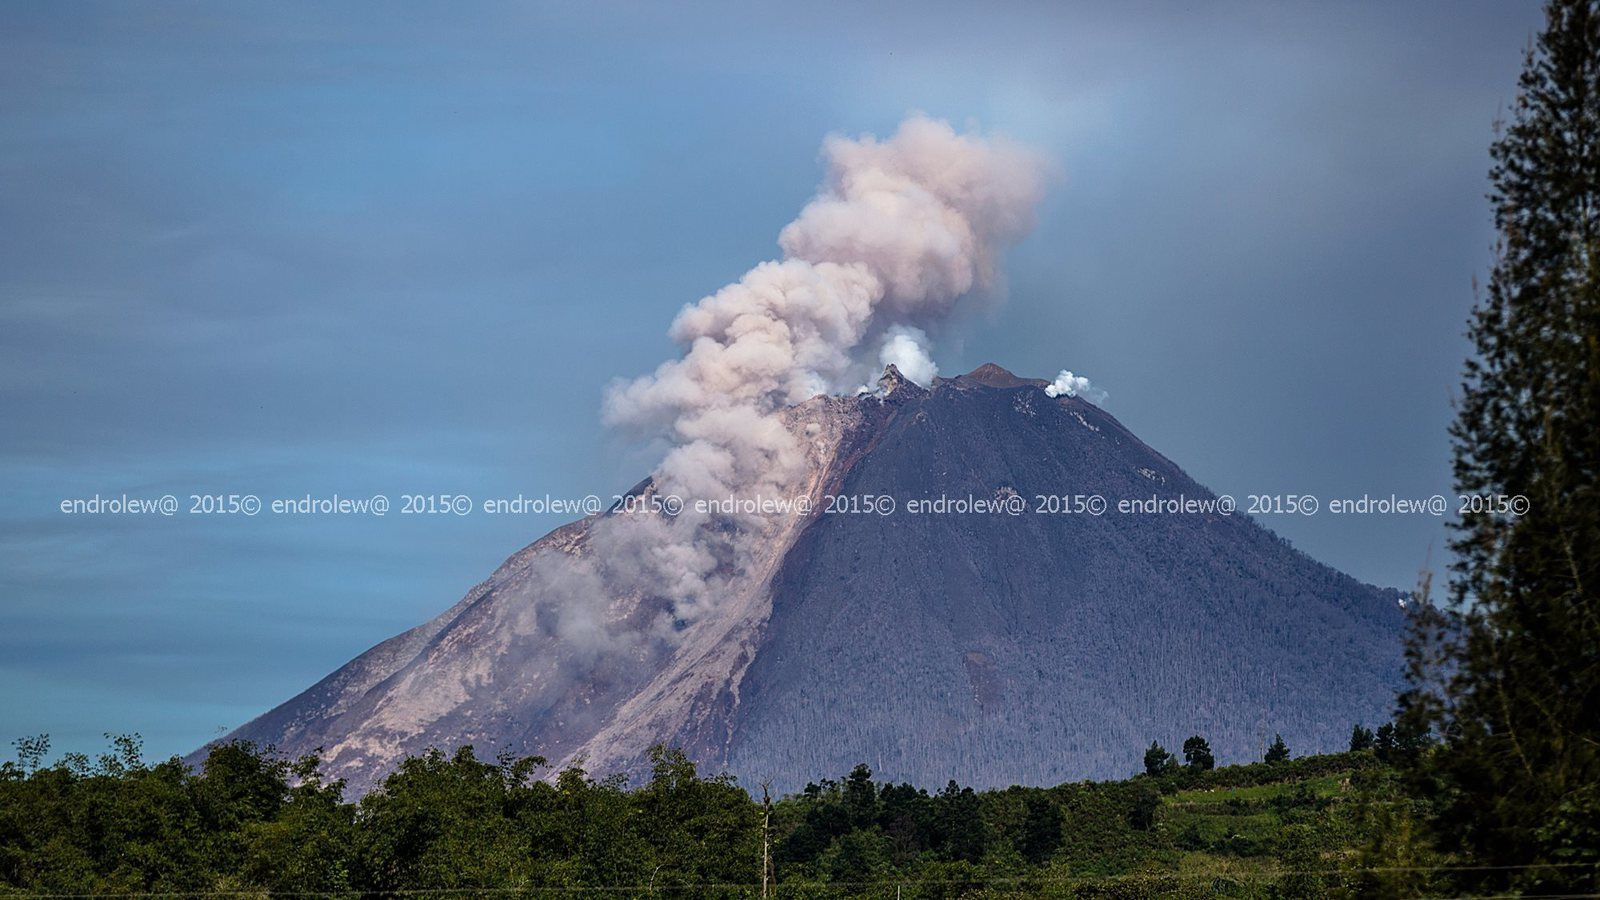 Sinabung - le 03.06.2015 / 9h11 - photo endrolew@